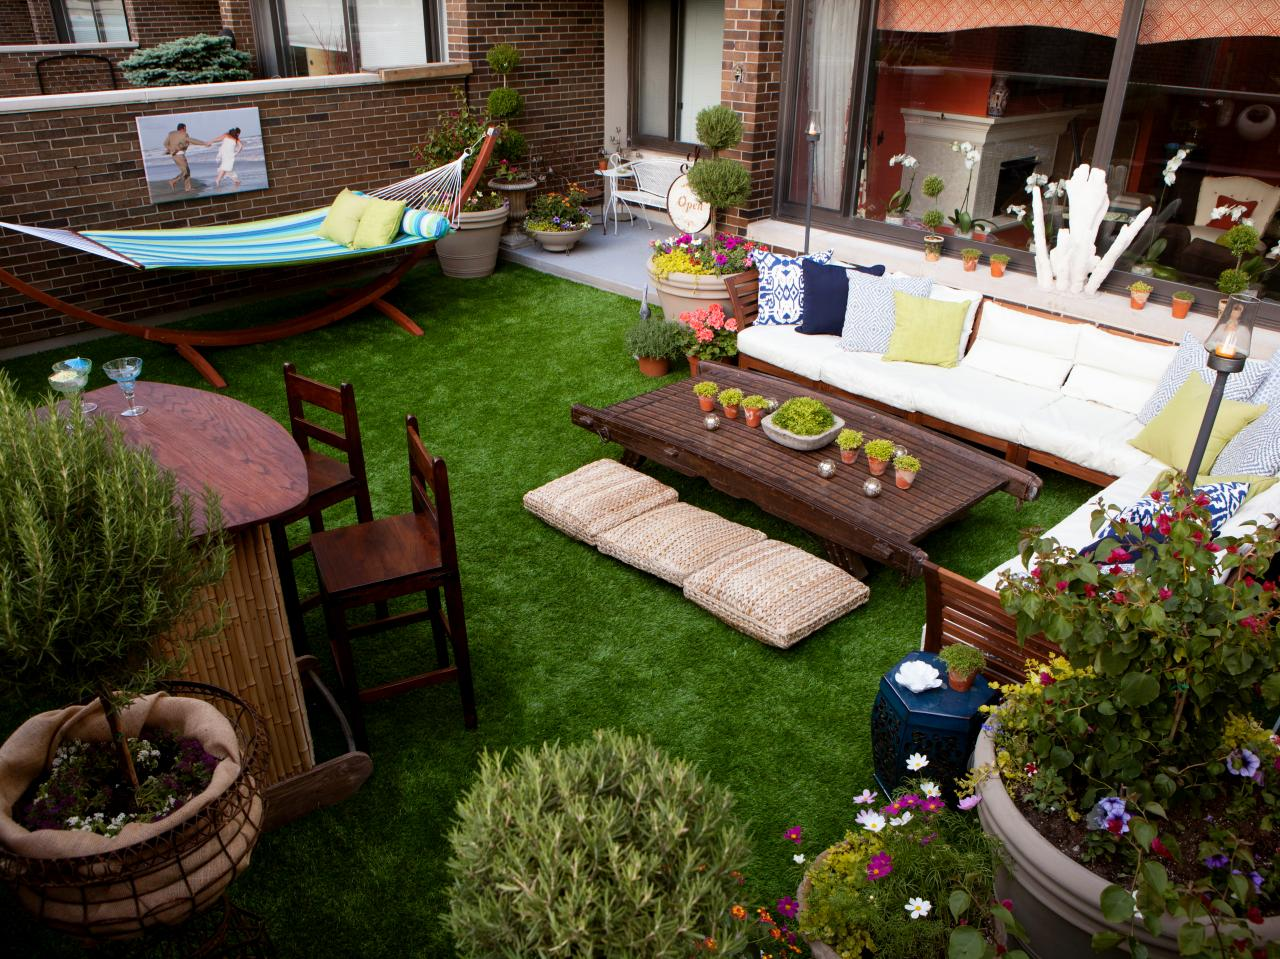 Easy Home Updates for Outdoor Entertaining, Patio Rec Room